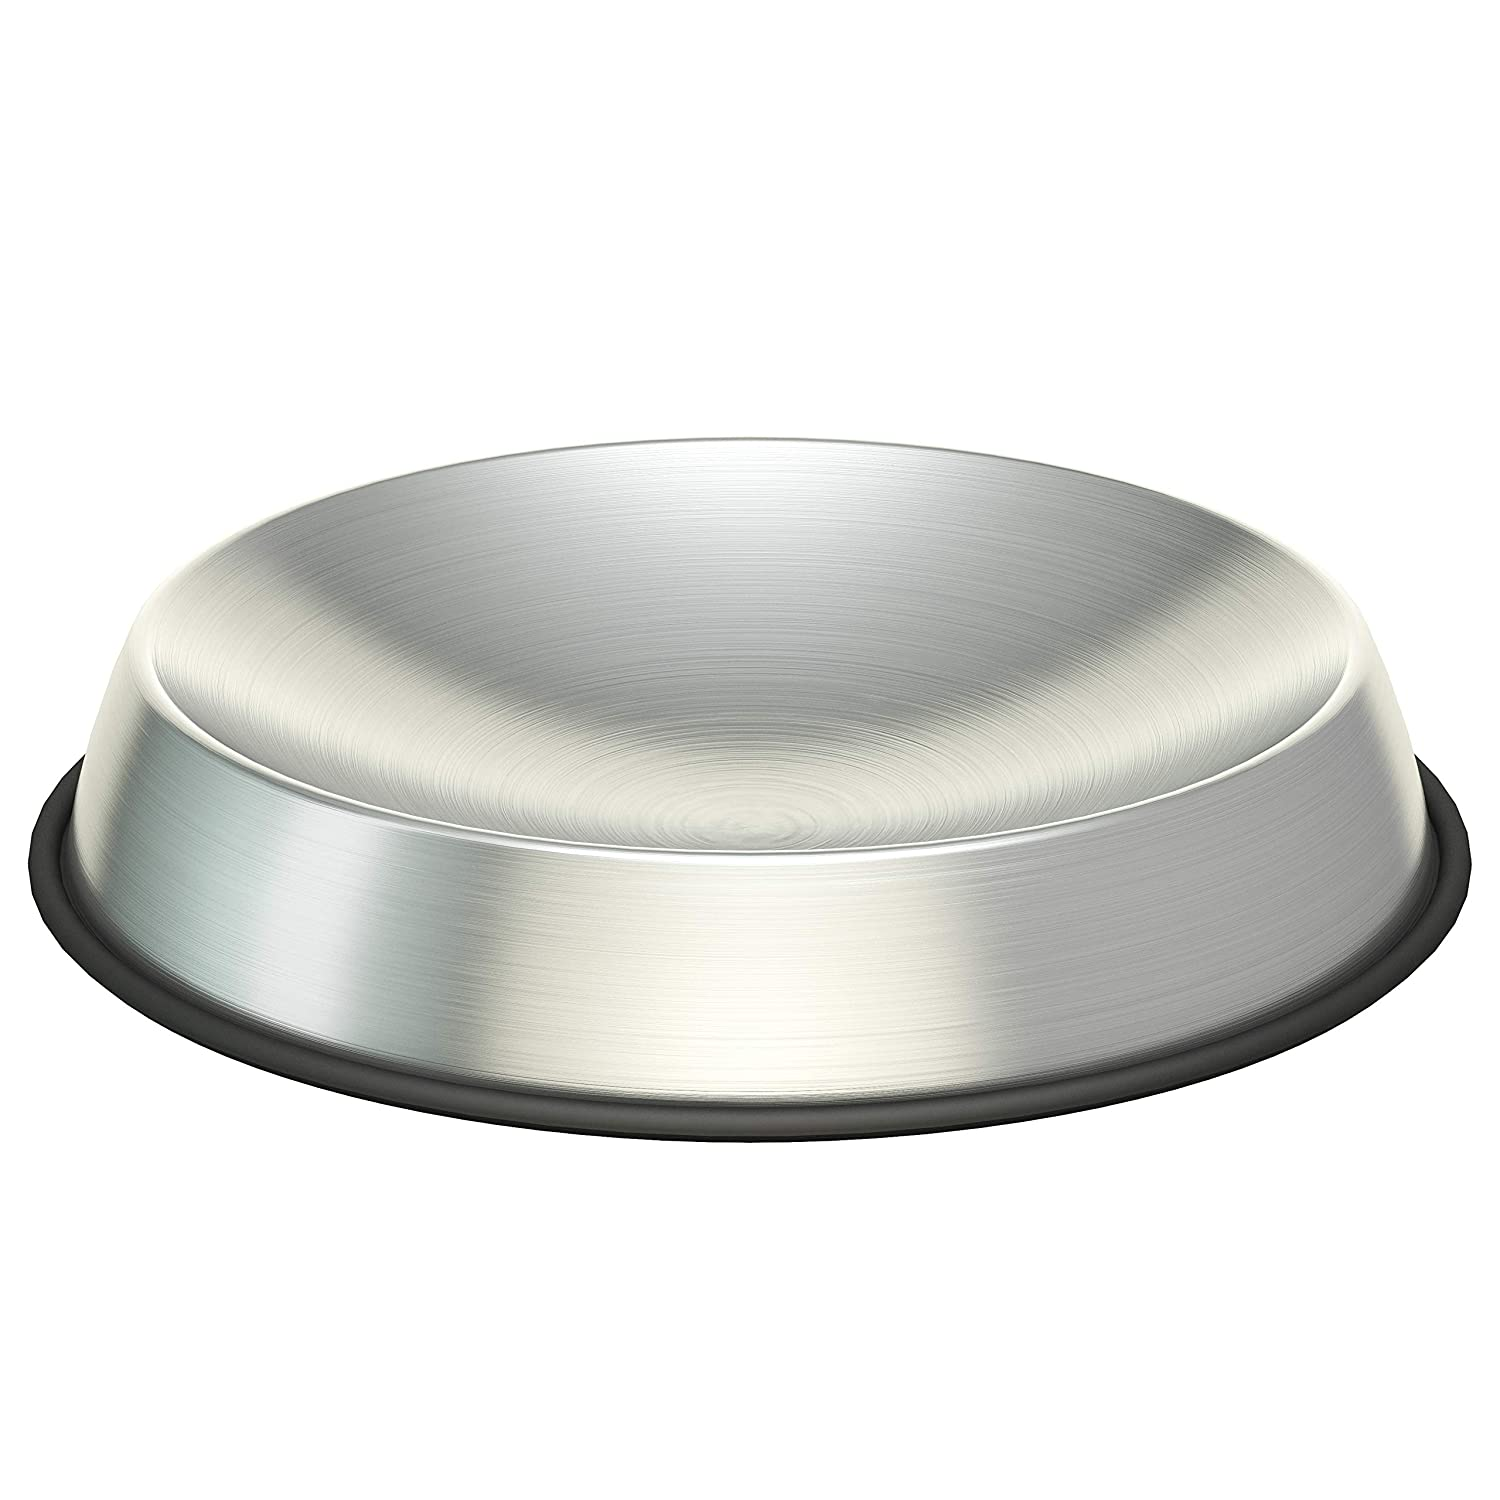 Dr. Catsby Cat Food Bowl, Whisker Friendly, Stainless Steel, Non Skid, Dishwasher Safe, May Also Prevent Acne, The Original Whisker Relief